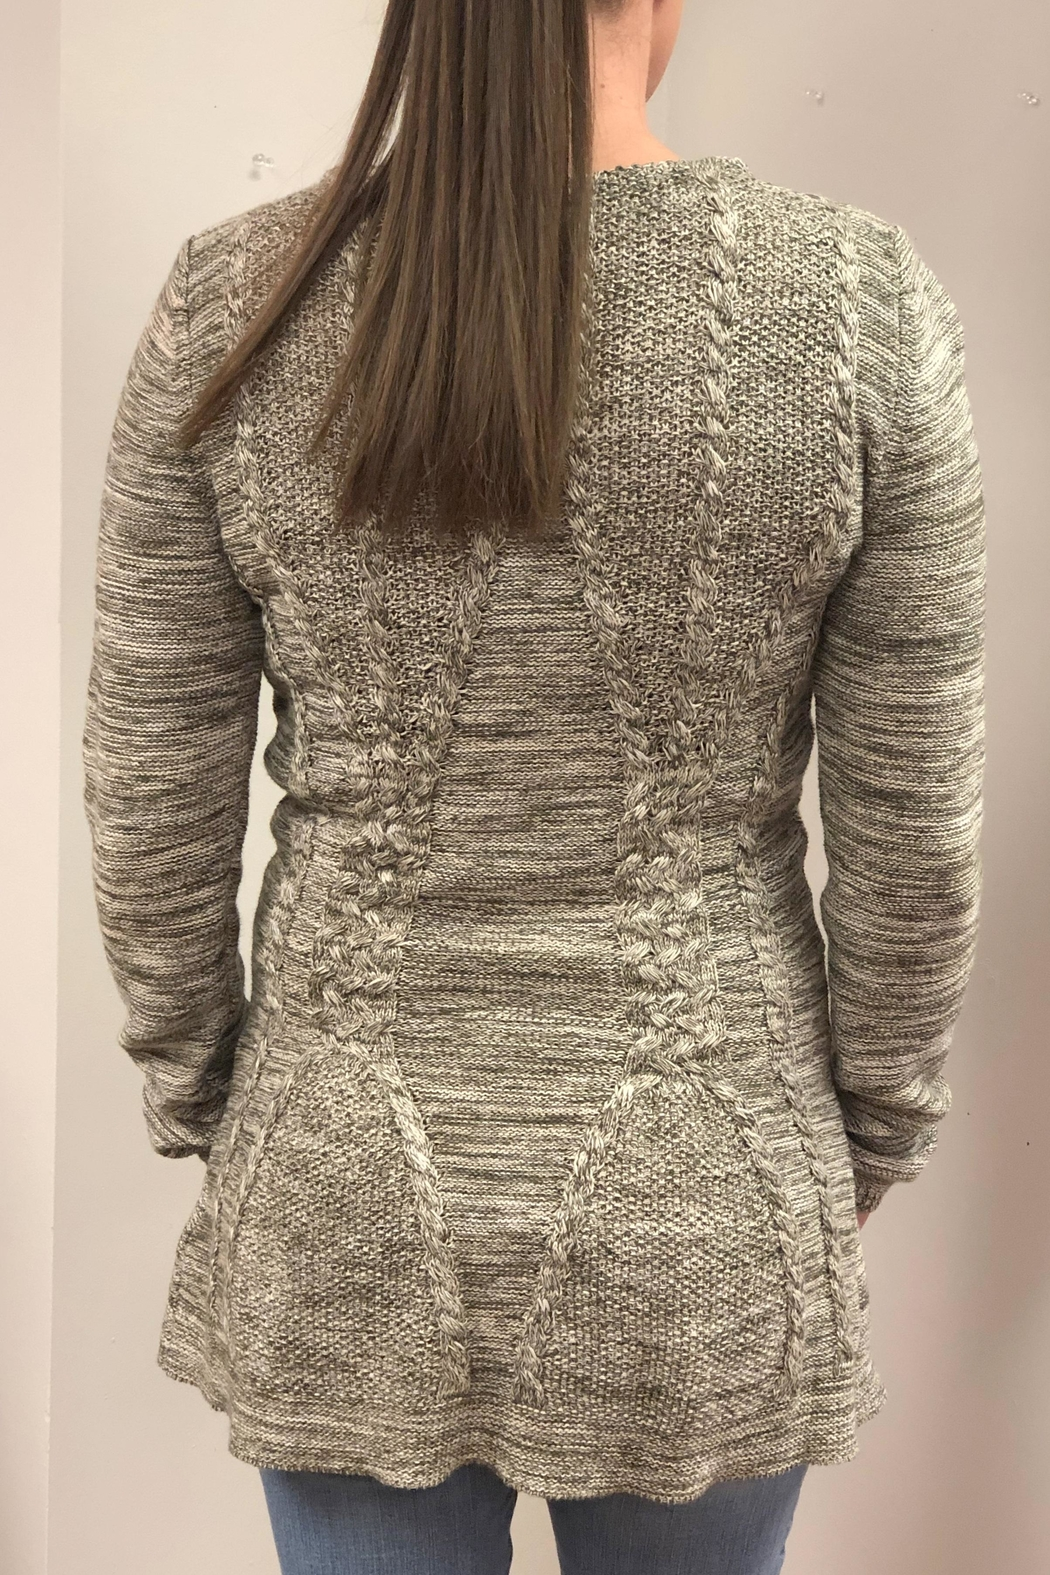 Keren Hart Fitted Knit Sweater - Front Full Image